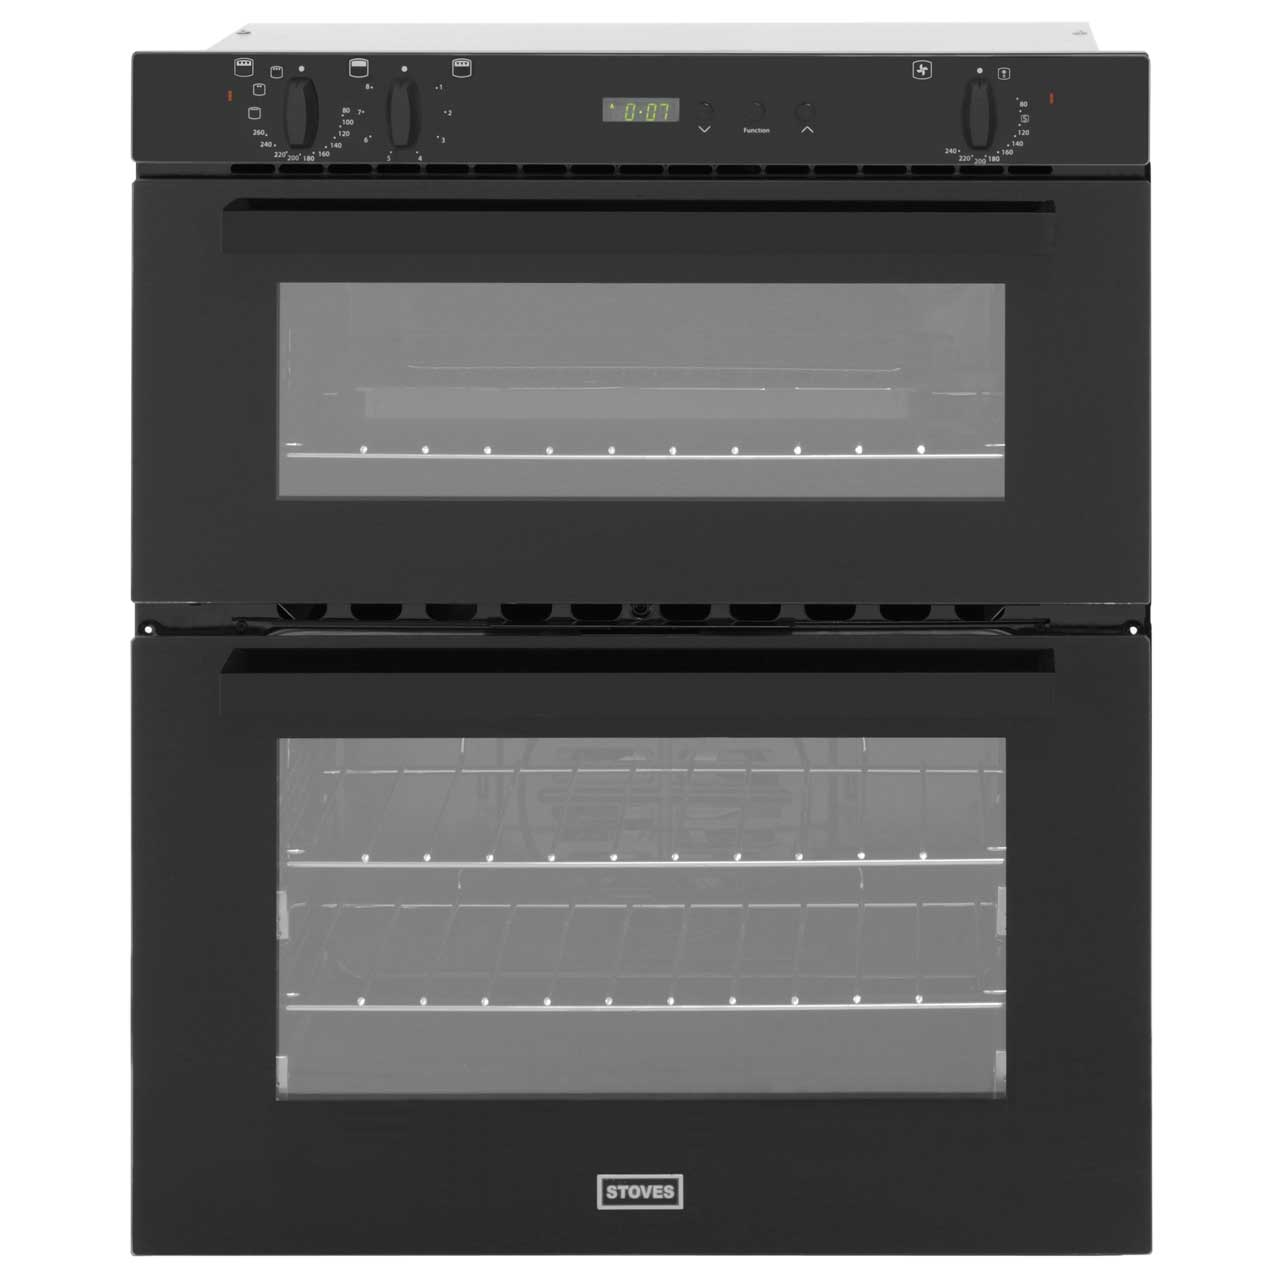 Stoves SEB700FPS Built Under Double Oven in Black